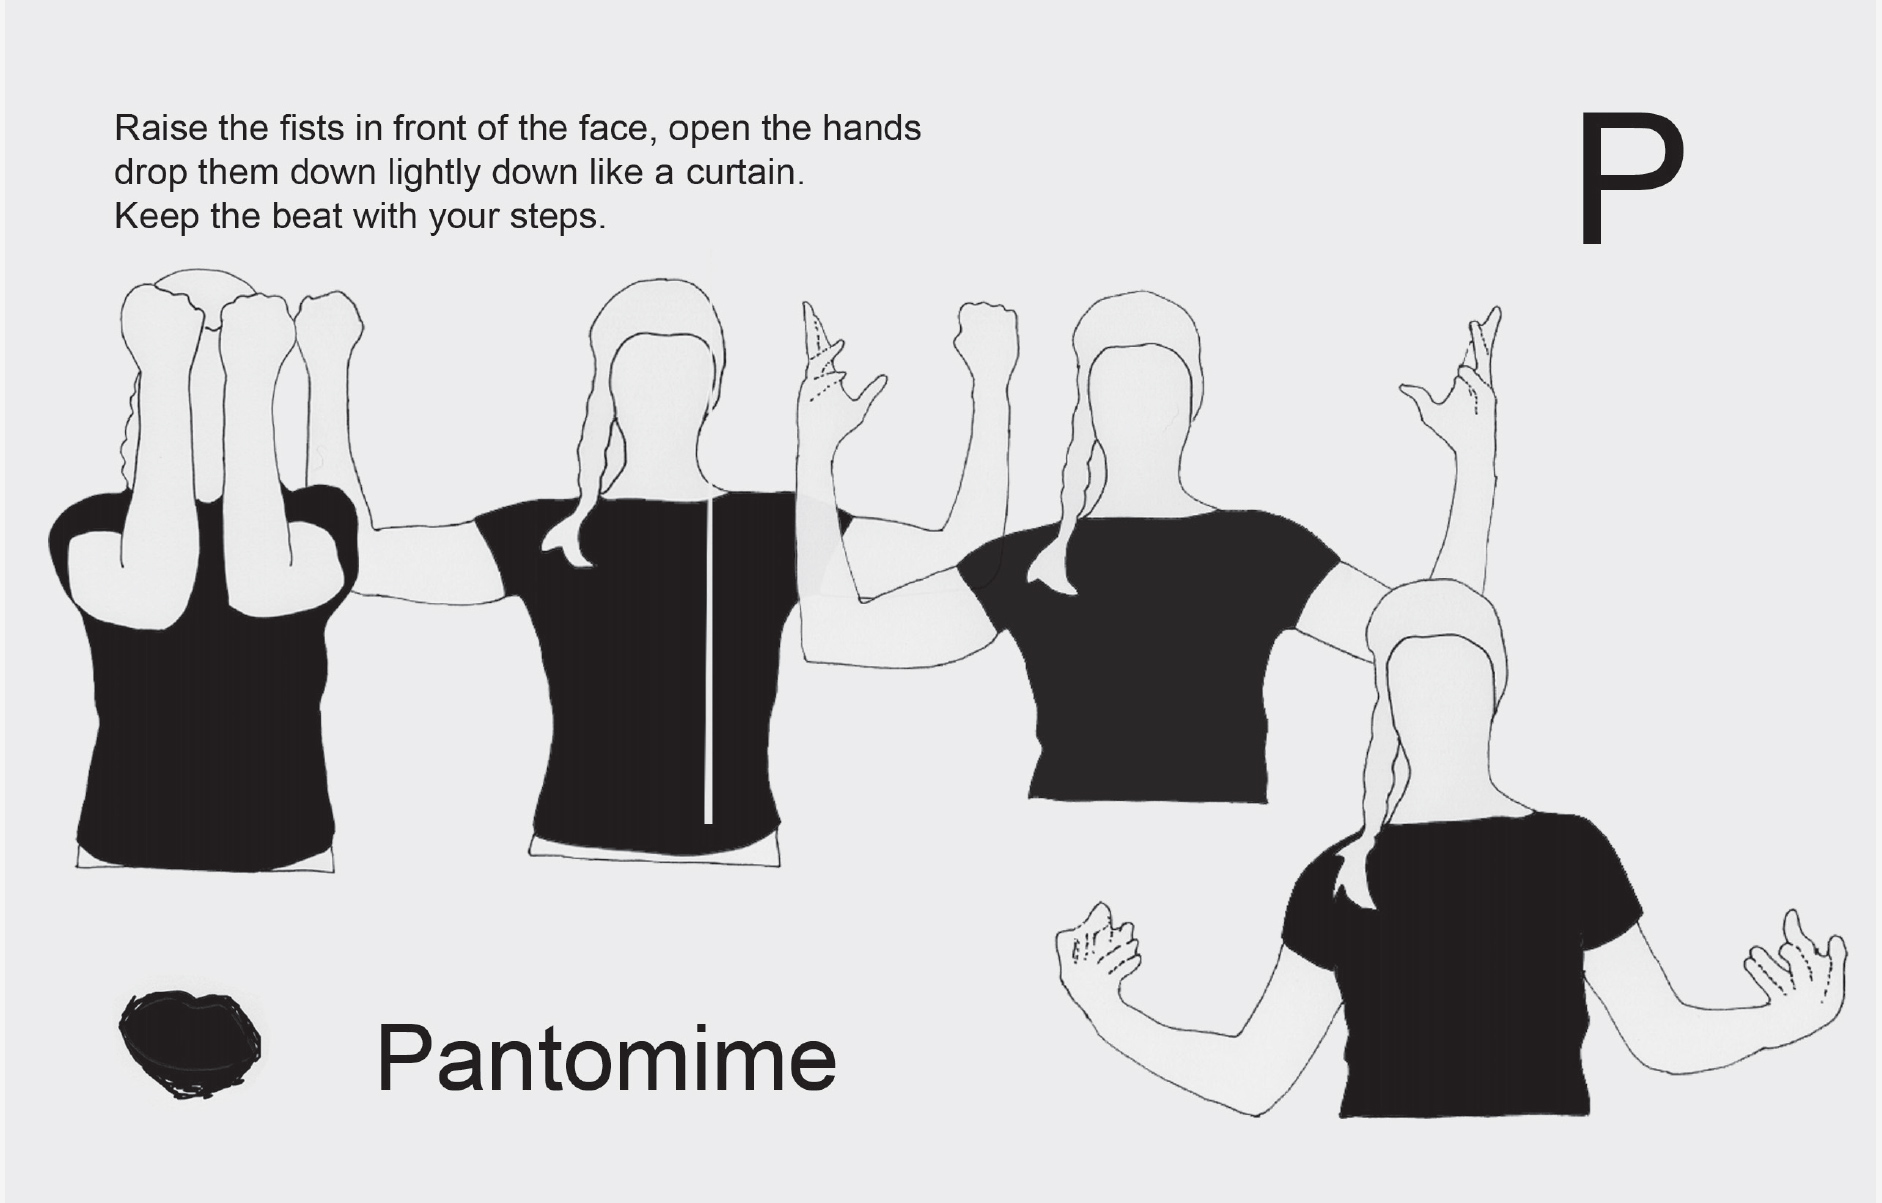 Pantomime instructions